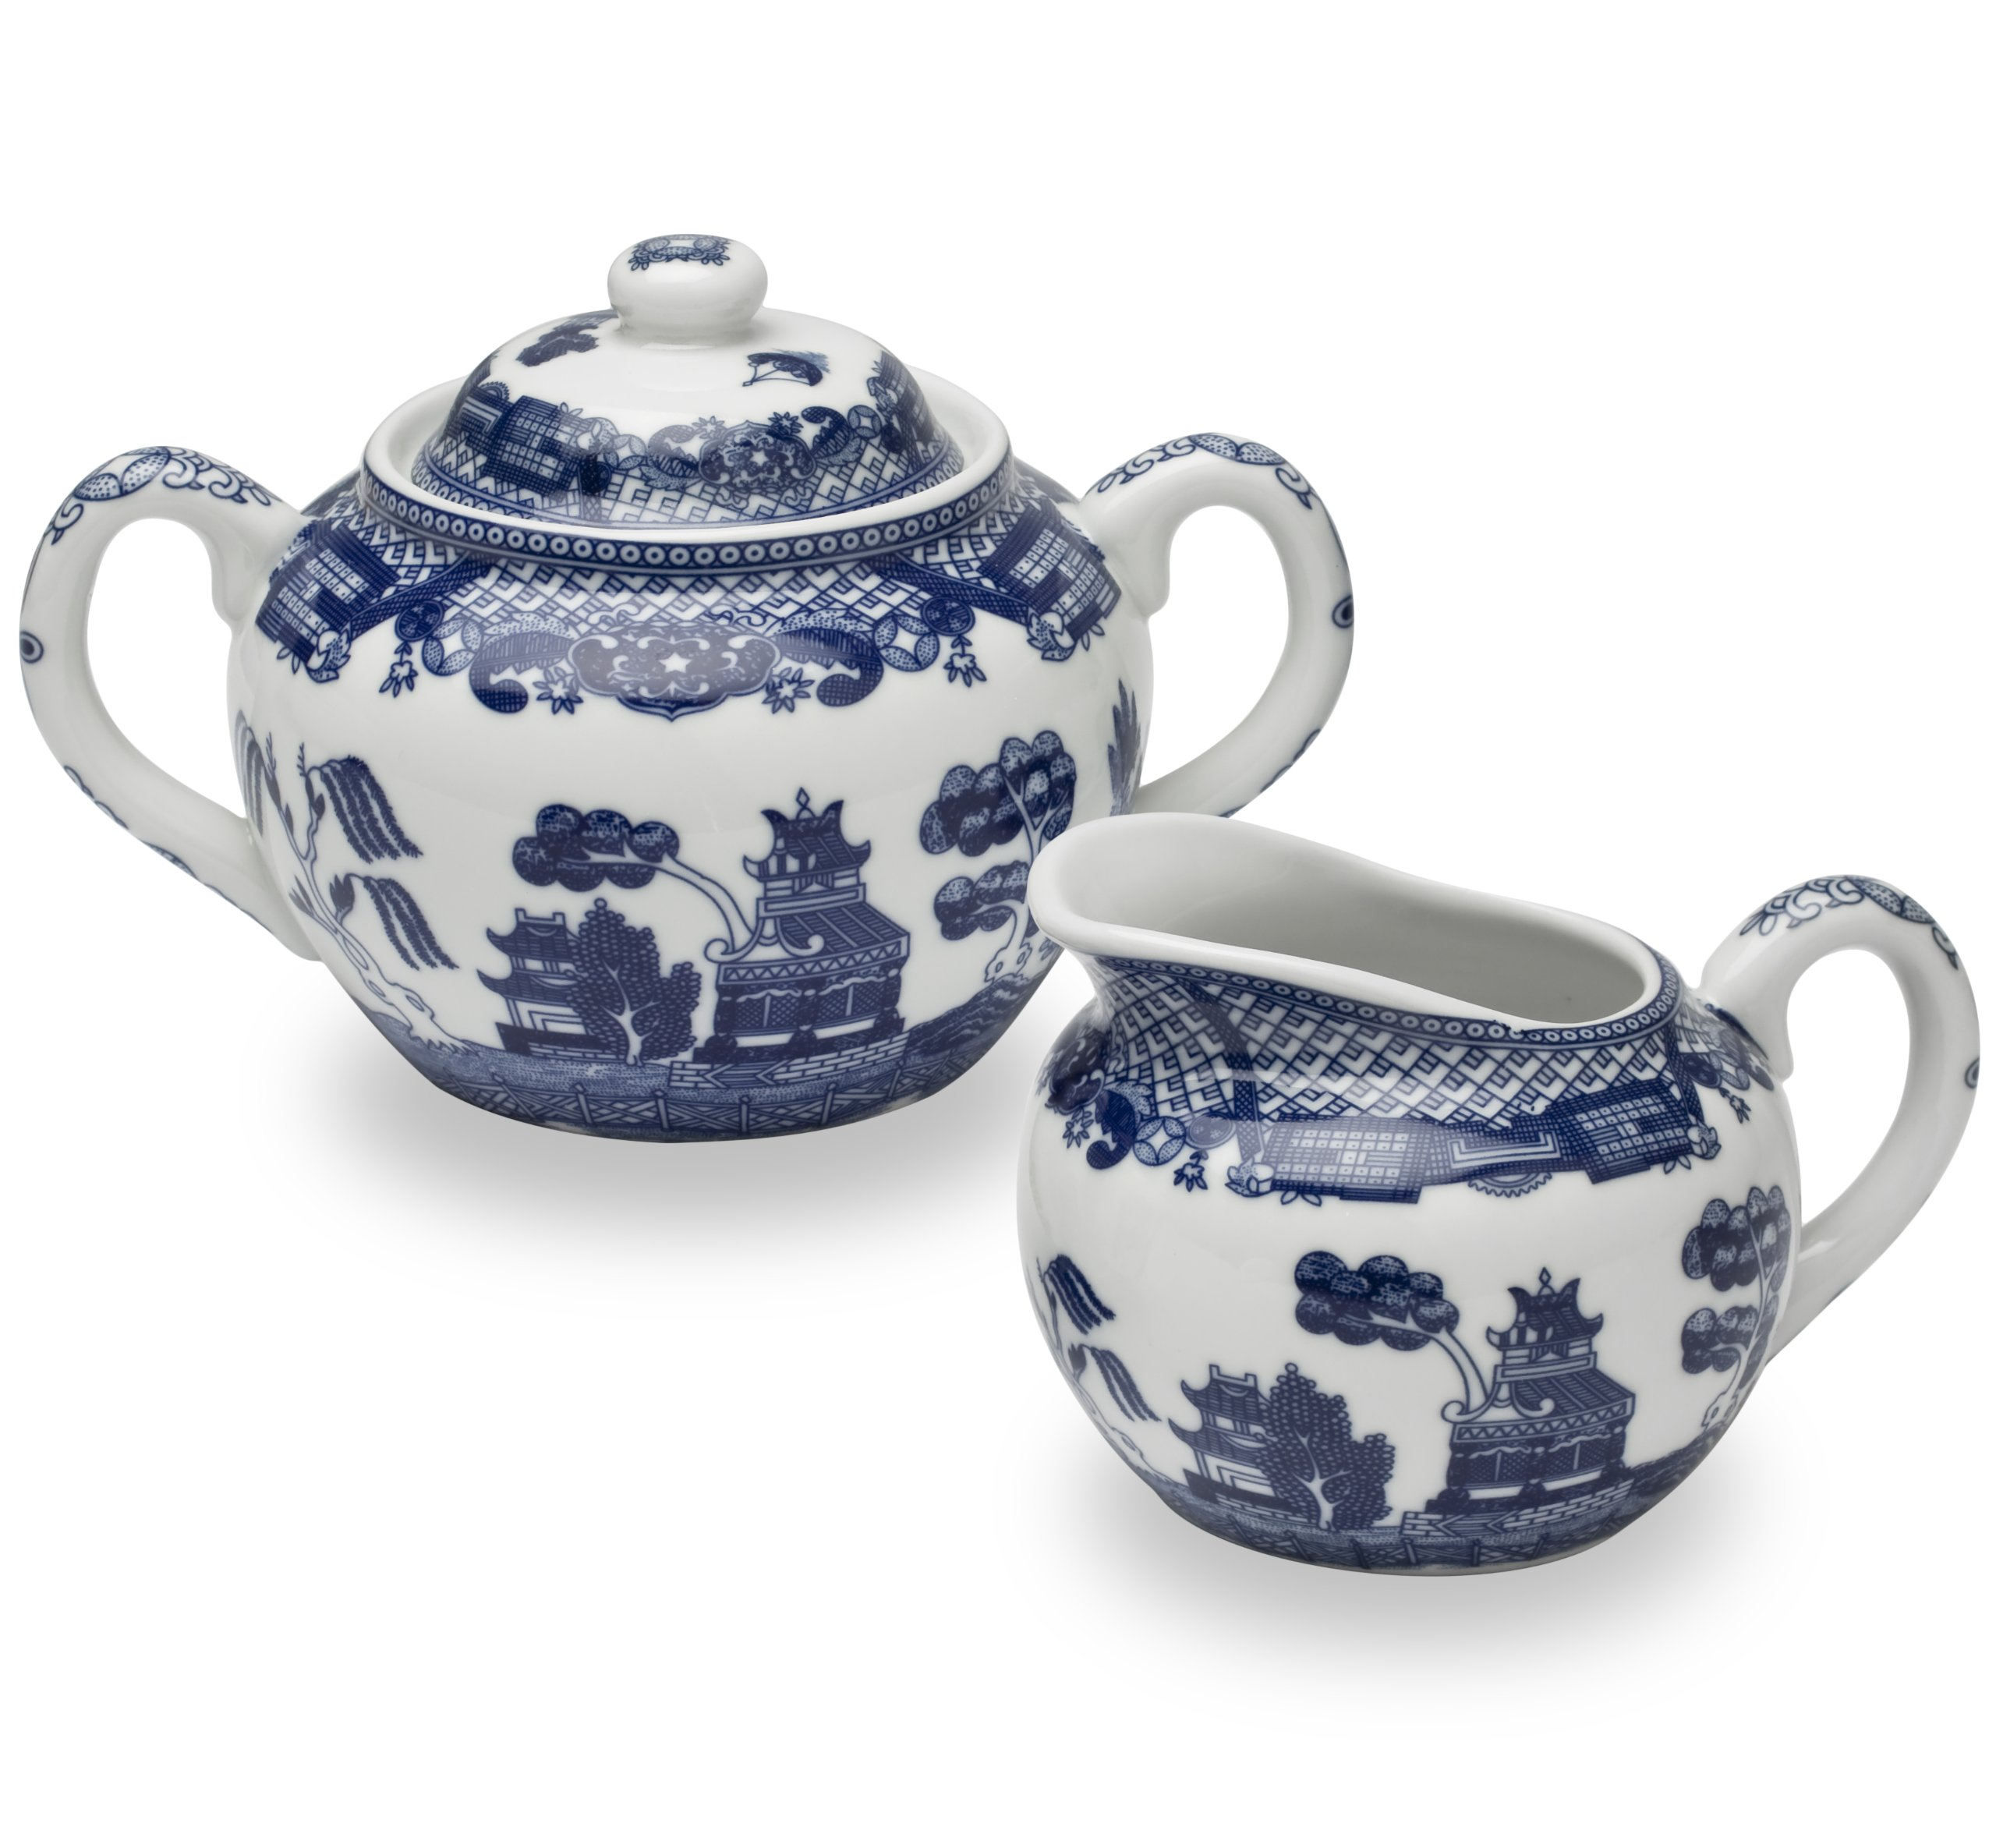 HIC Harold Import Co. YK-329 HIC Blue Willow Creamer Dispenser and Sugar Bowl with Lid, Fine White Porcelain, 3 Piece Set by HIC Harold Import Co.